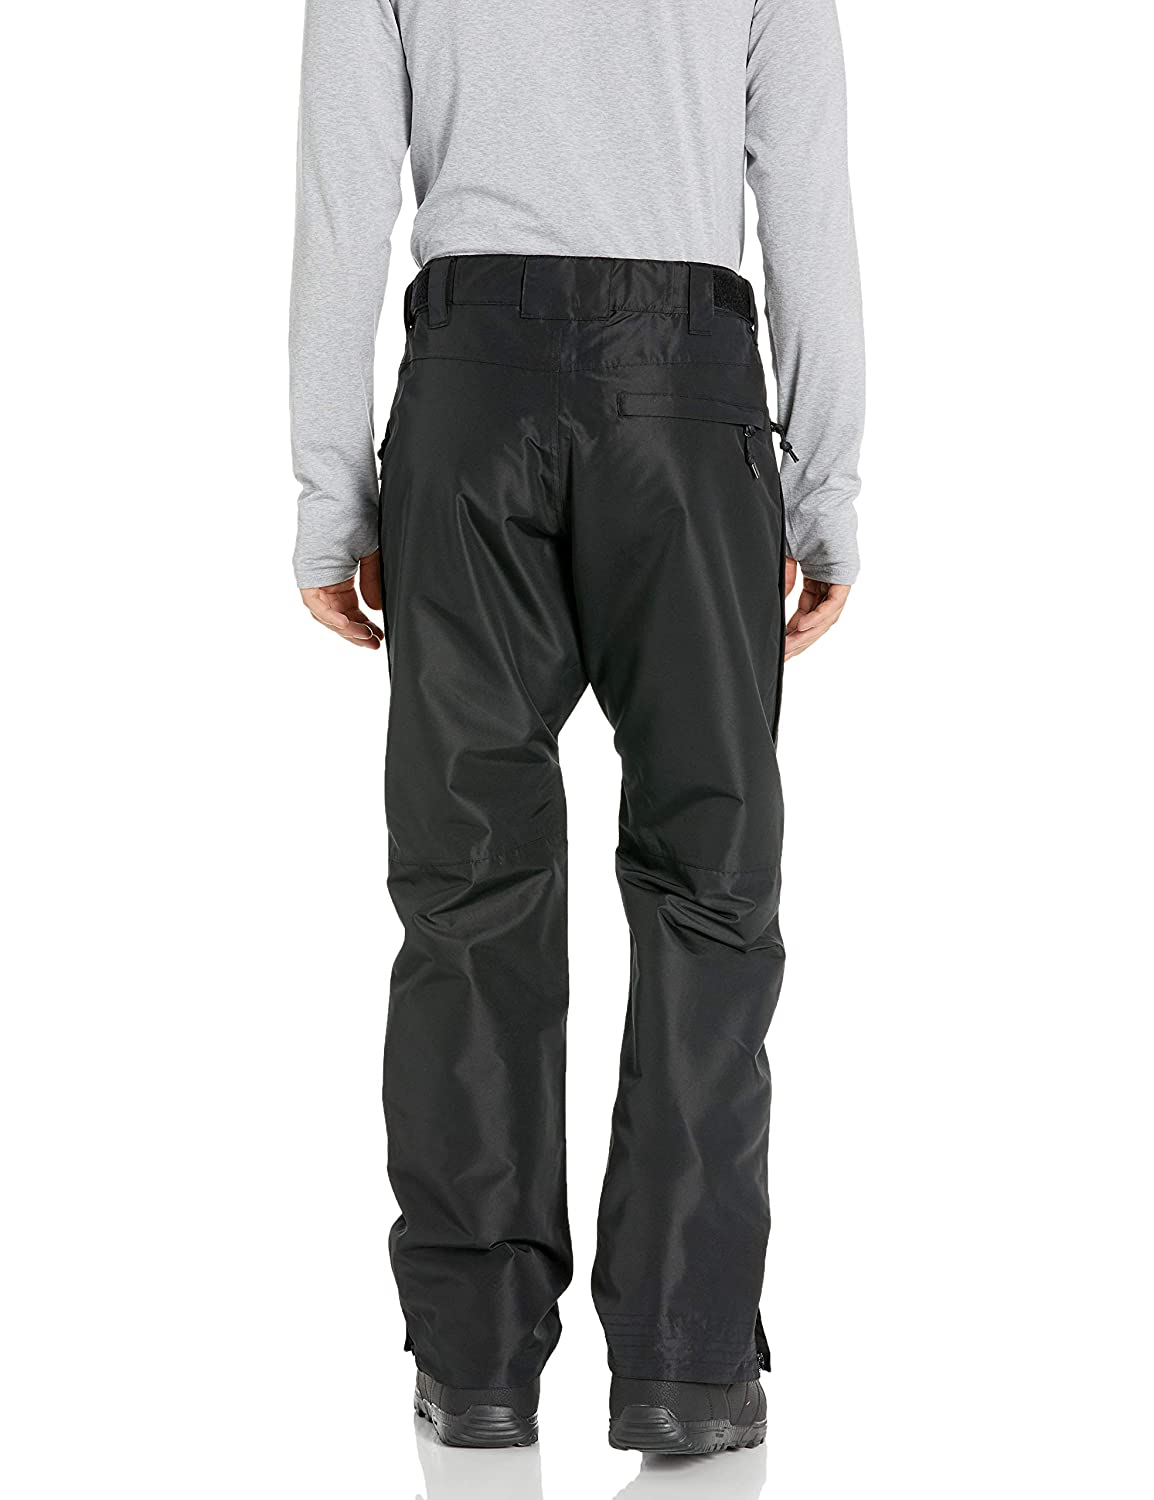 AIRBLASTER Hip Bag Relaxed Fit Outerwear Shell Pant